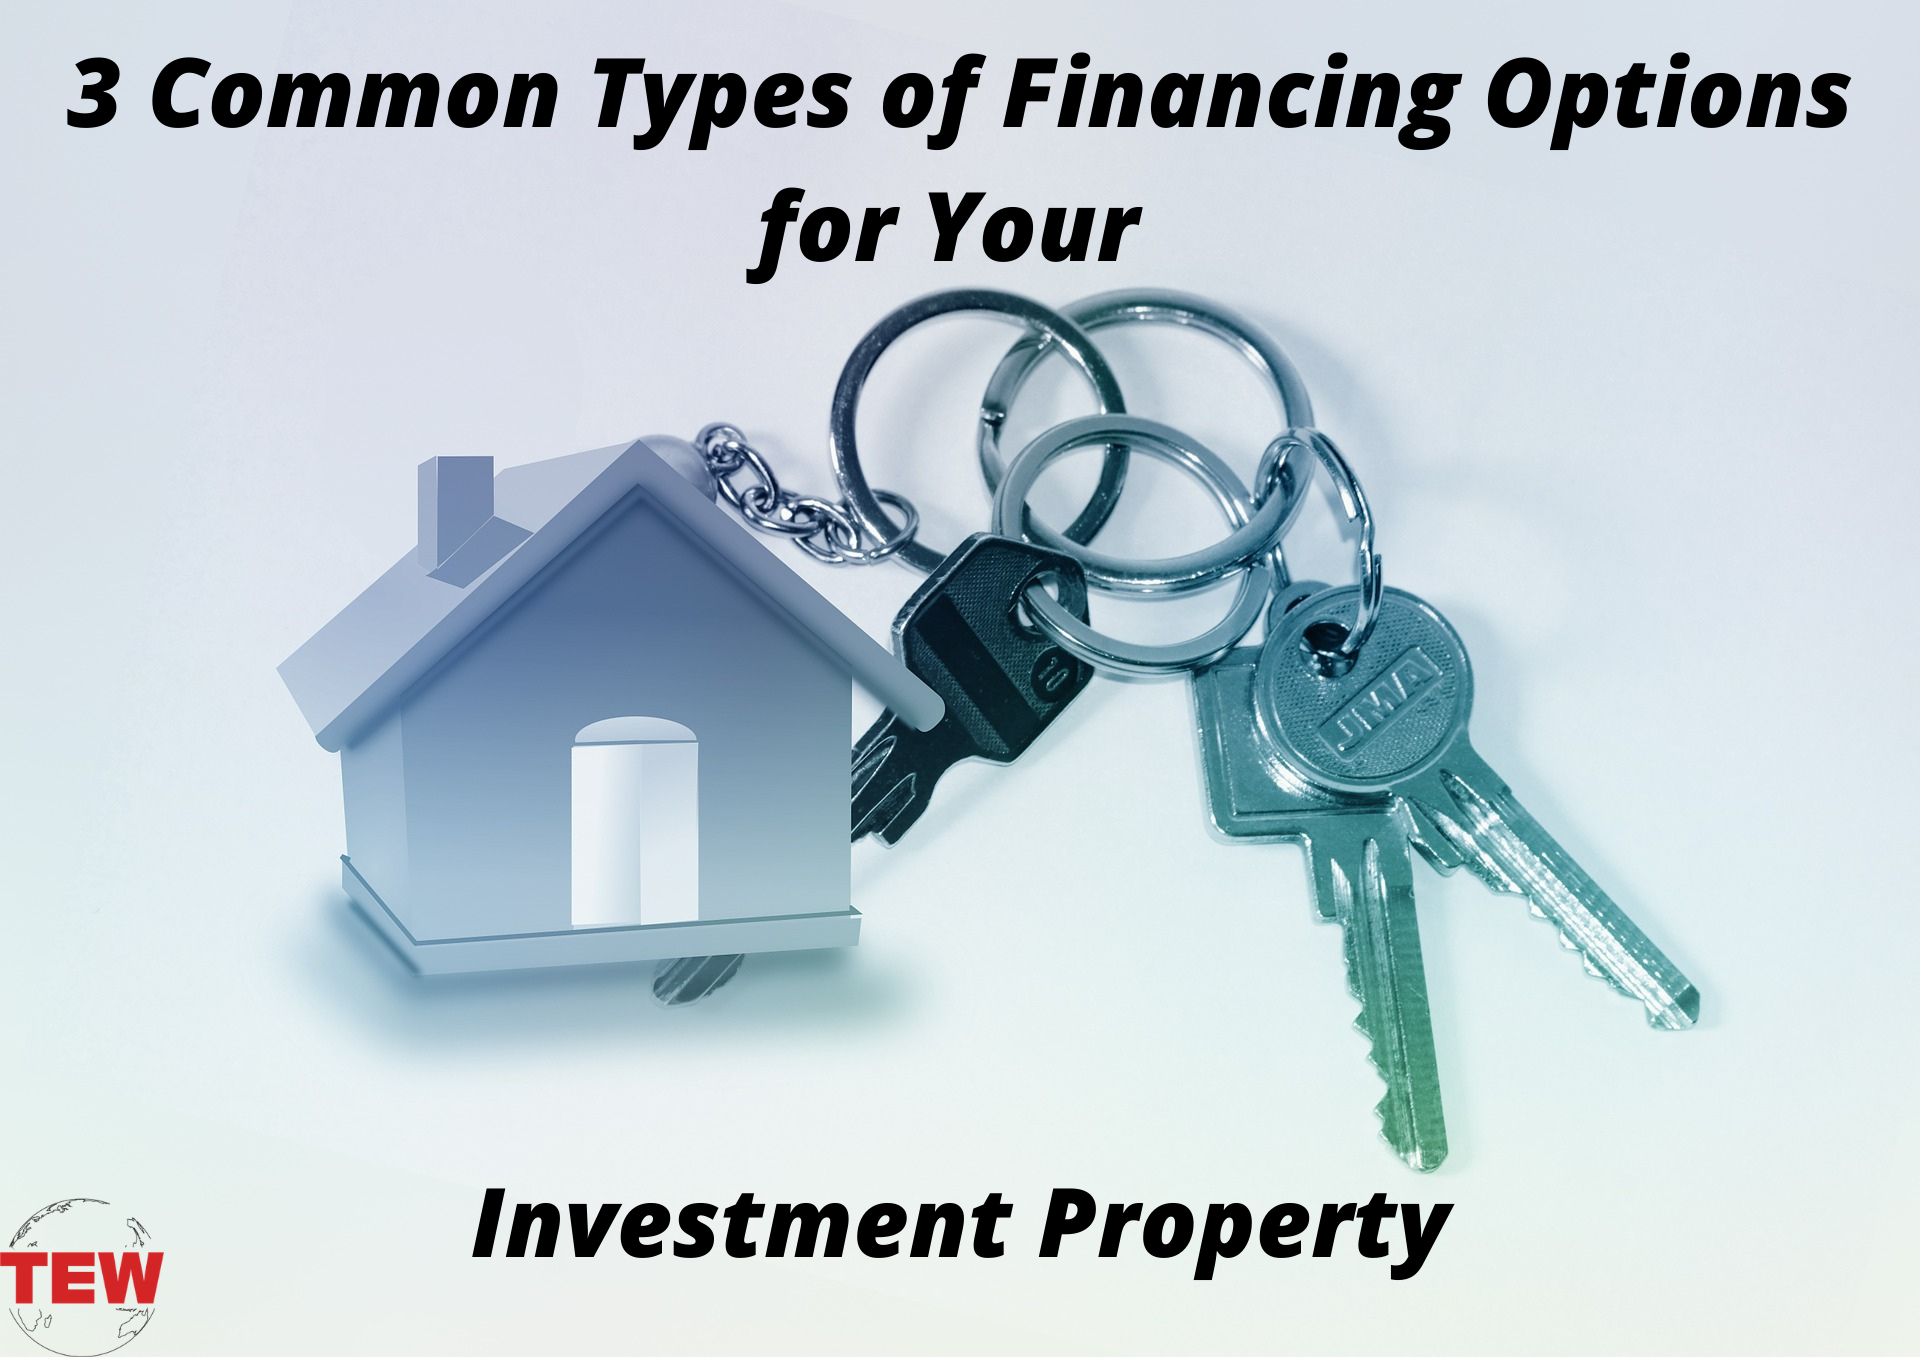 3 Common Types of Financing Options for Your Investment Property